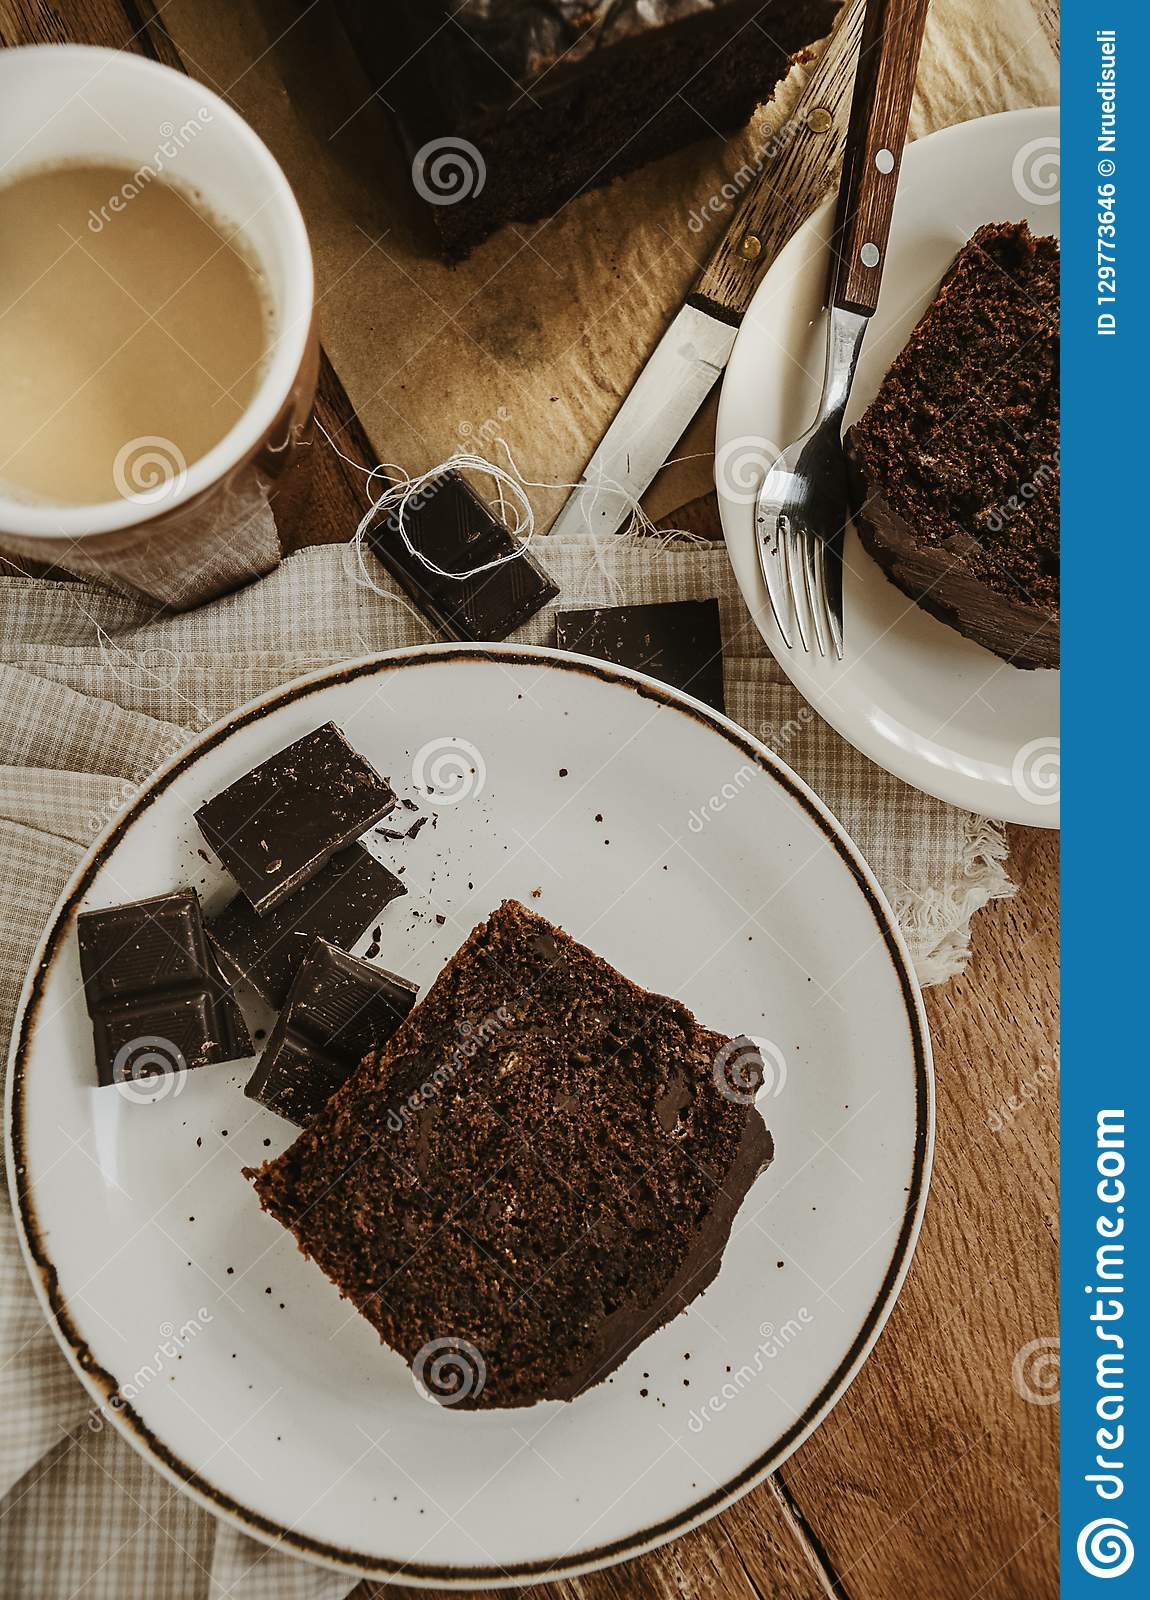 Chocolate pound cake pieces on white plates. Brown toned.